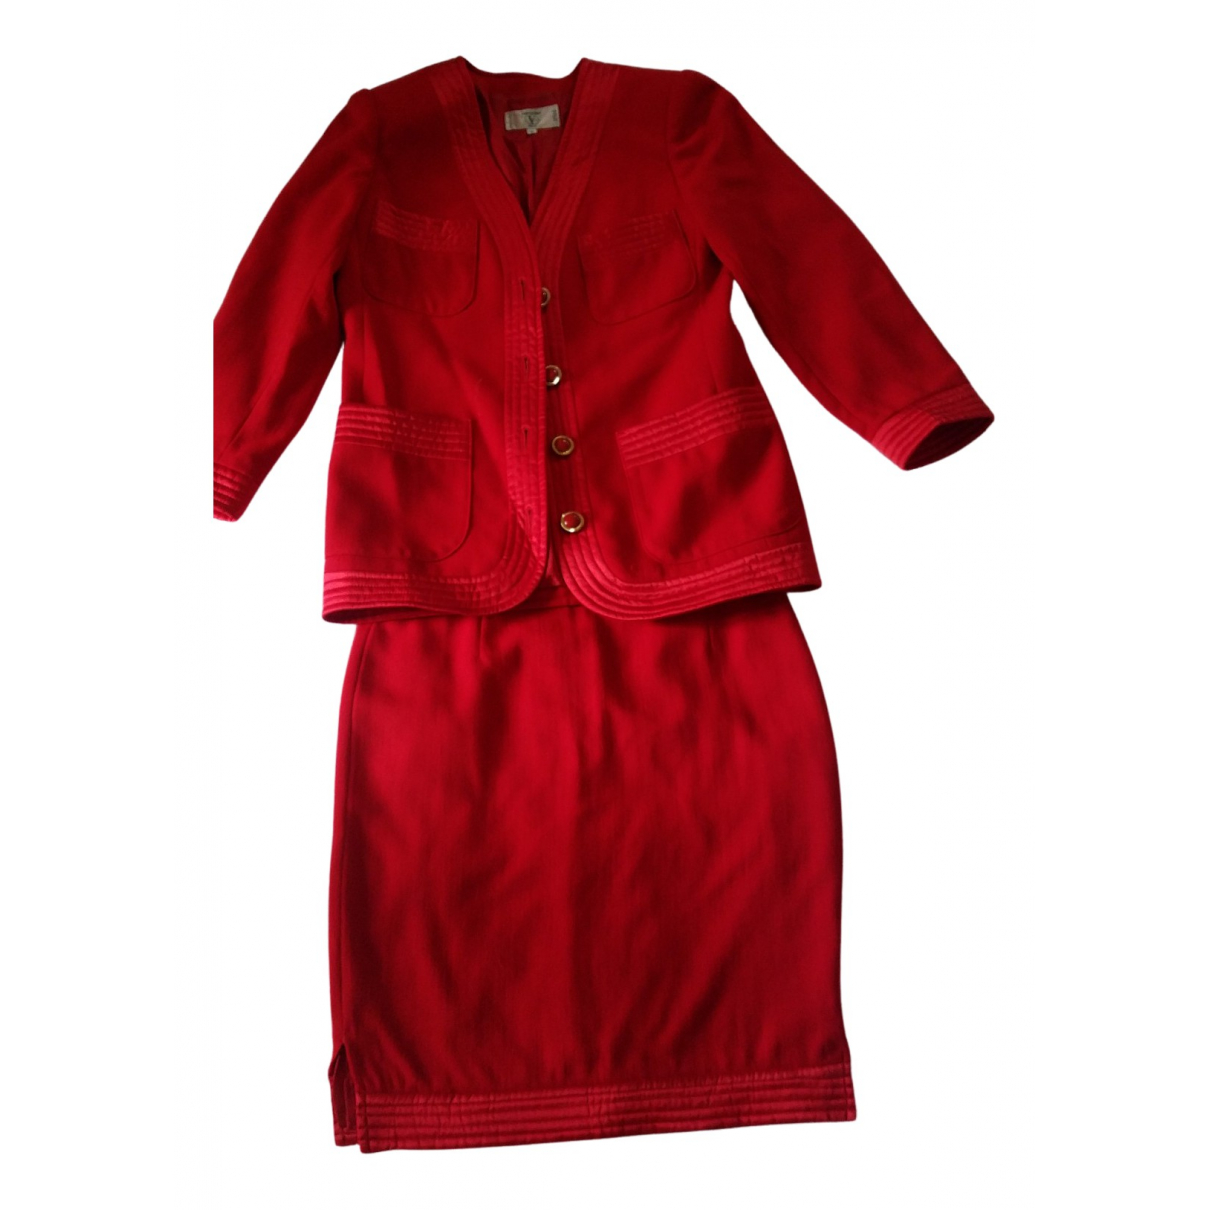 Valentino Garavani N Red Wool dress for Women 44 IT